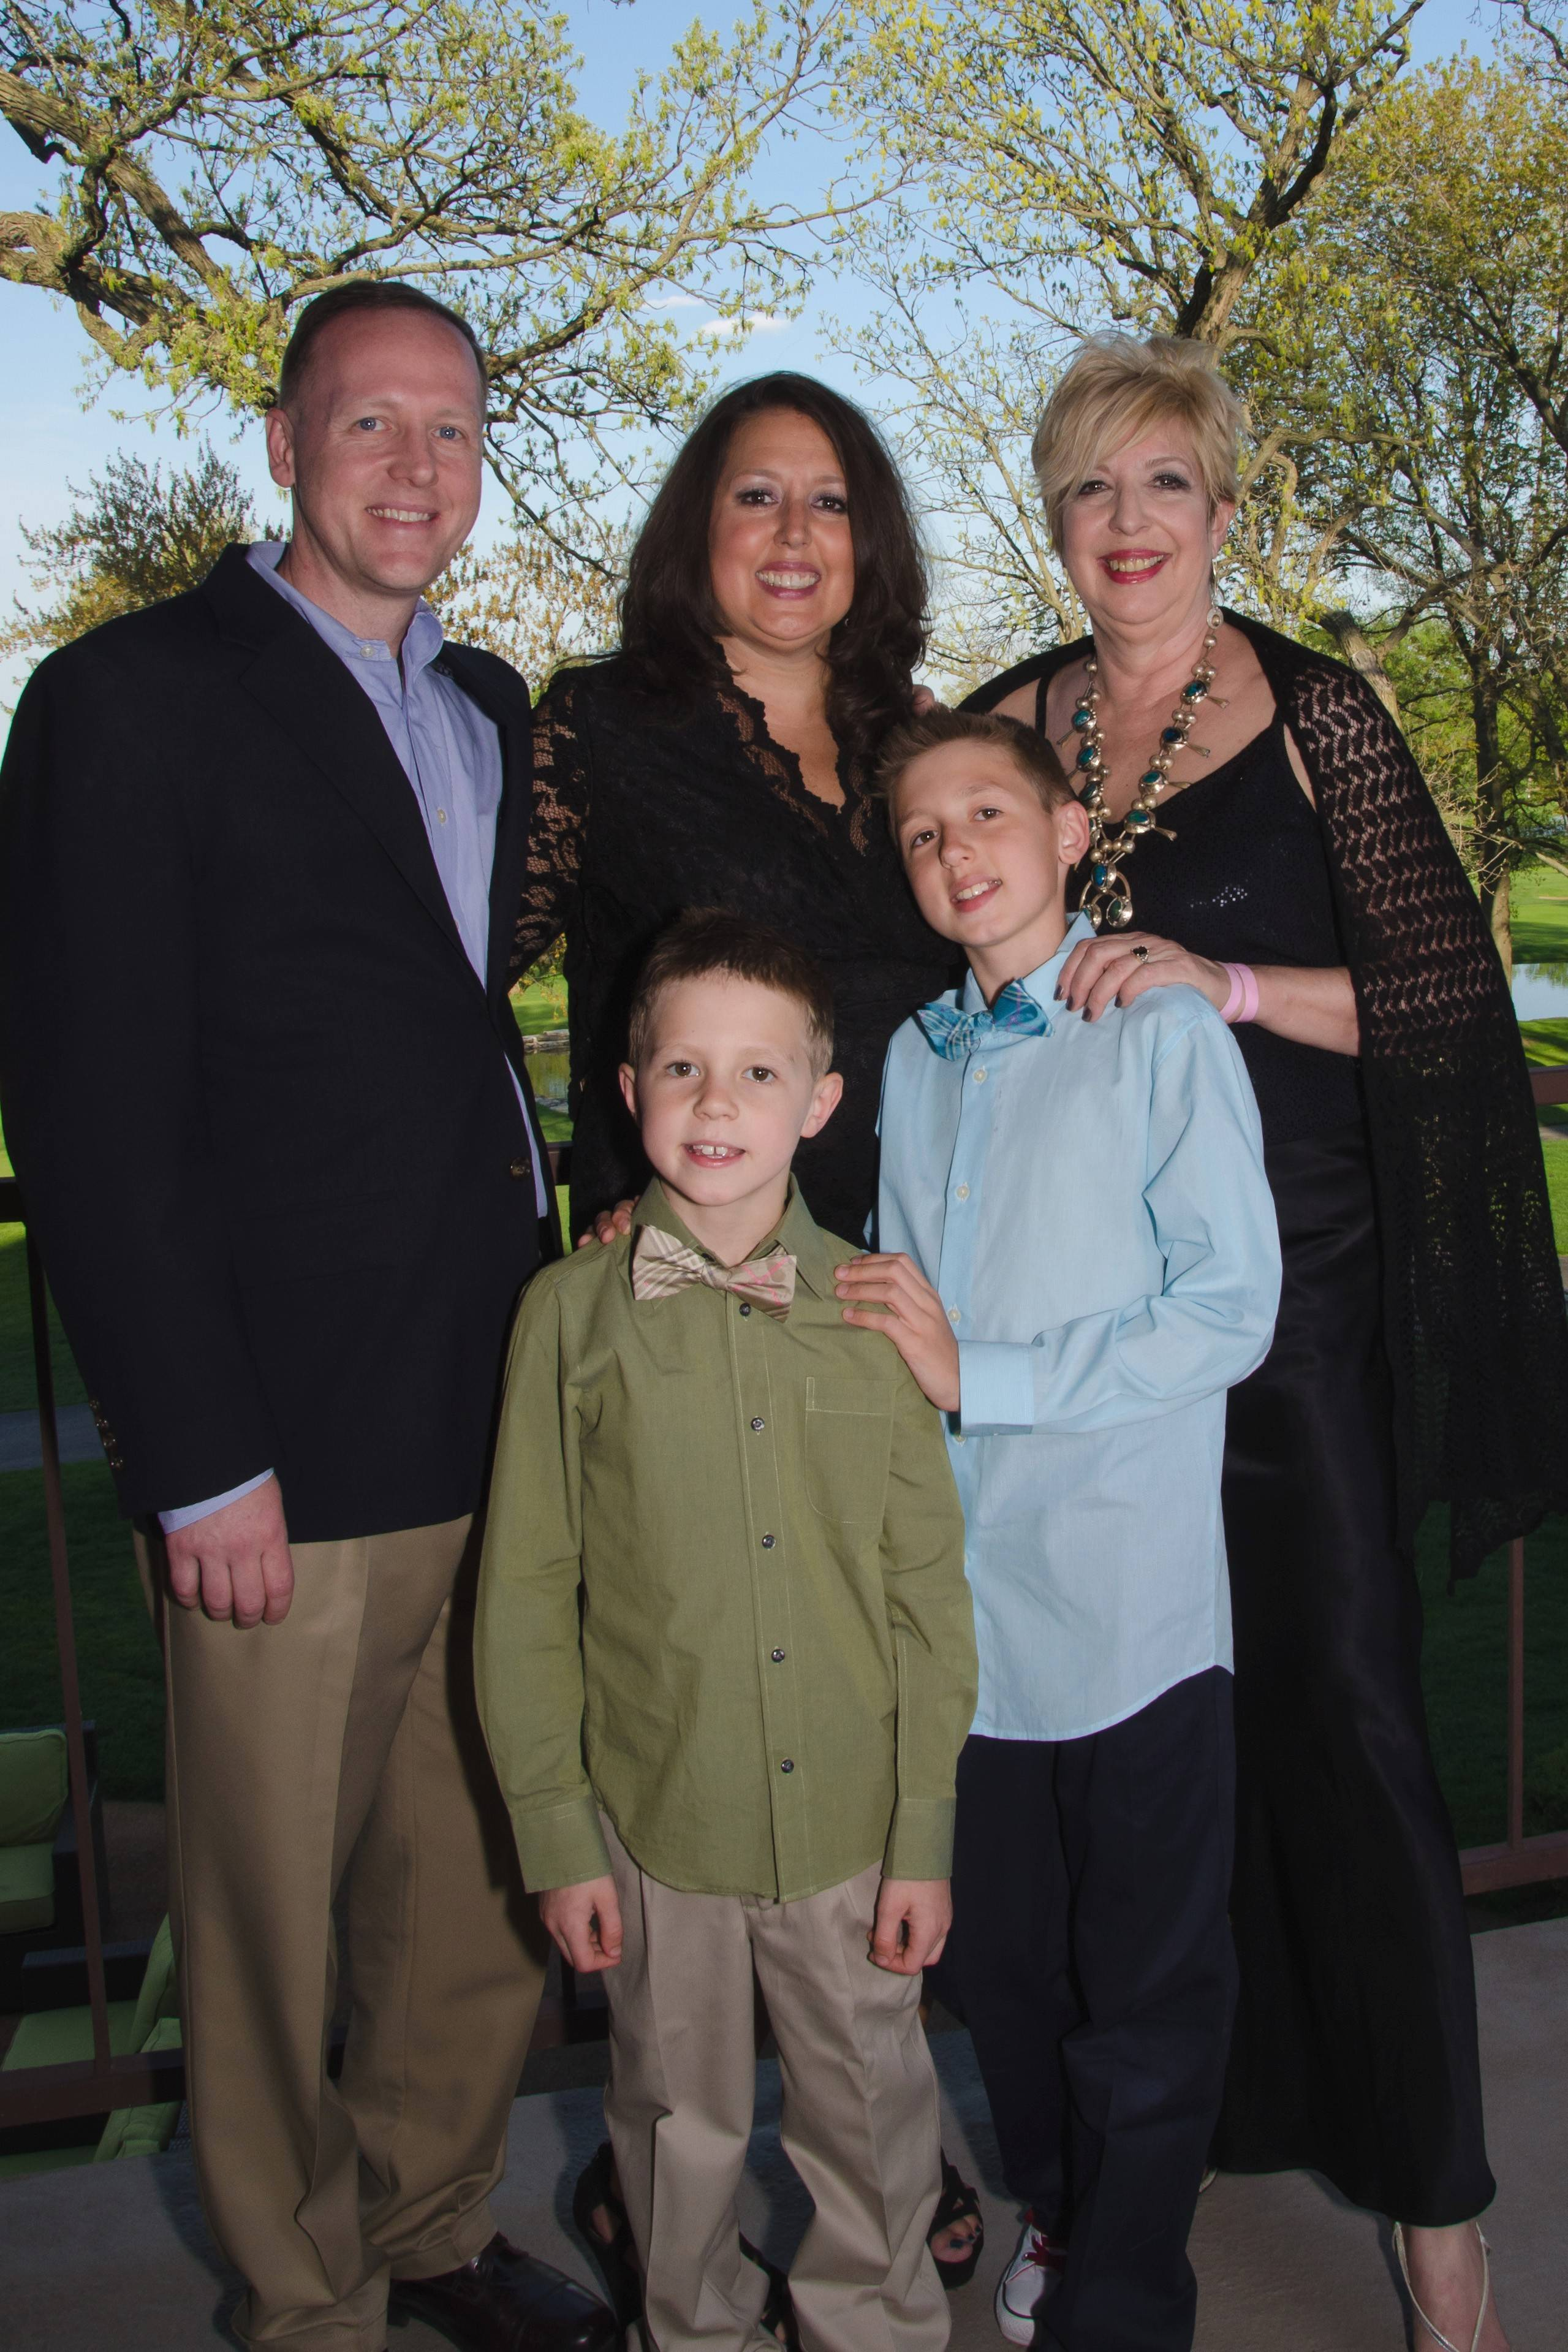 Summer White Lynch, center, with her husband Michael, mother Jan White, and sons Aiden and Dylan.